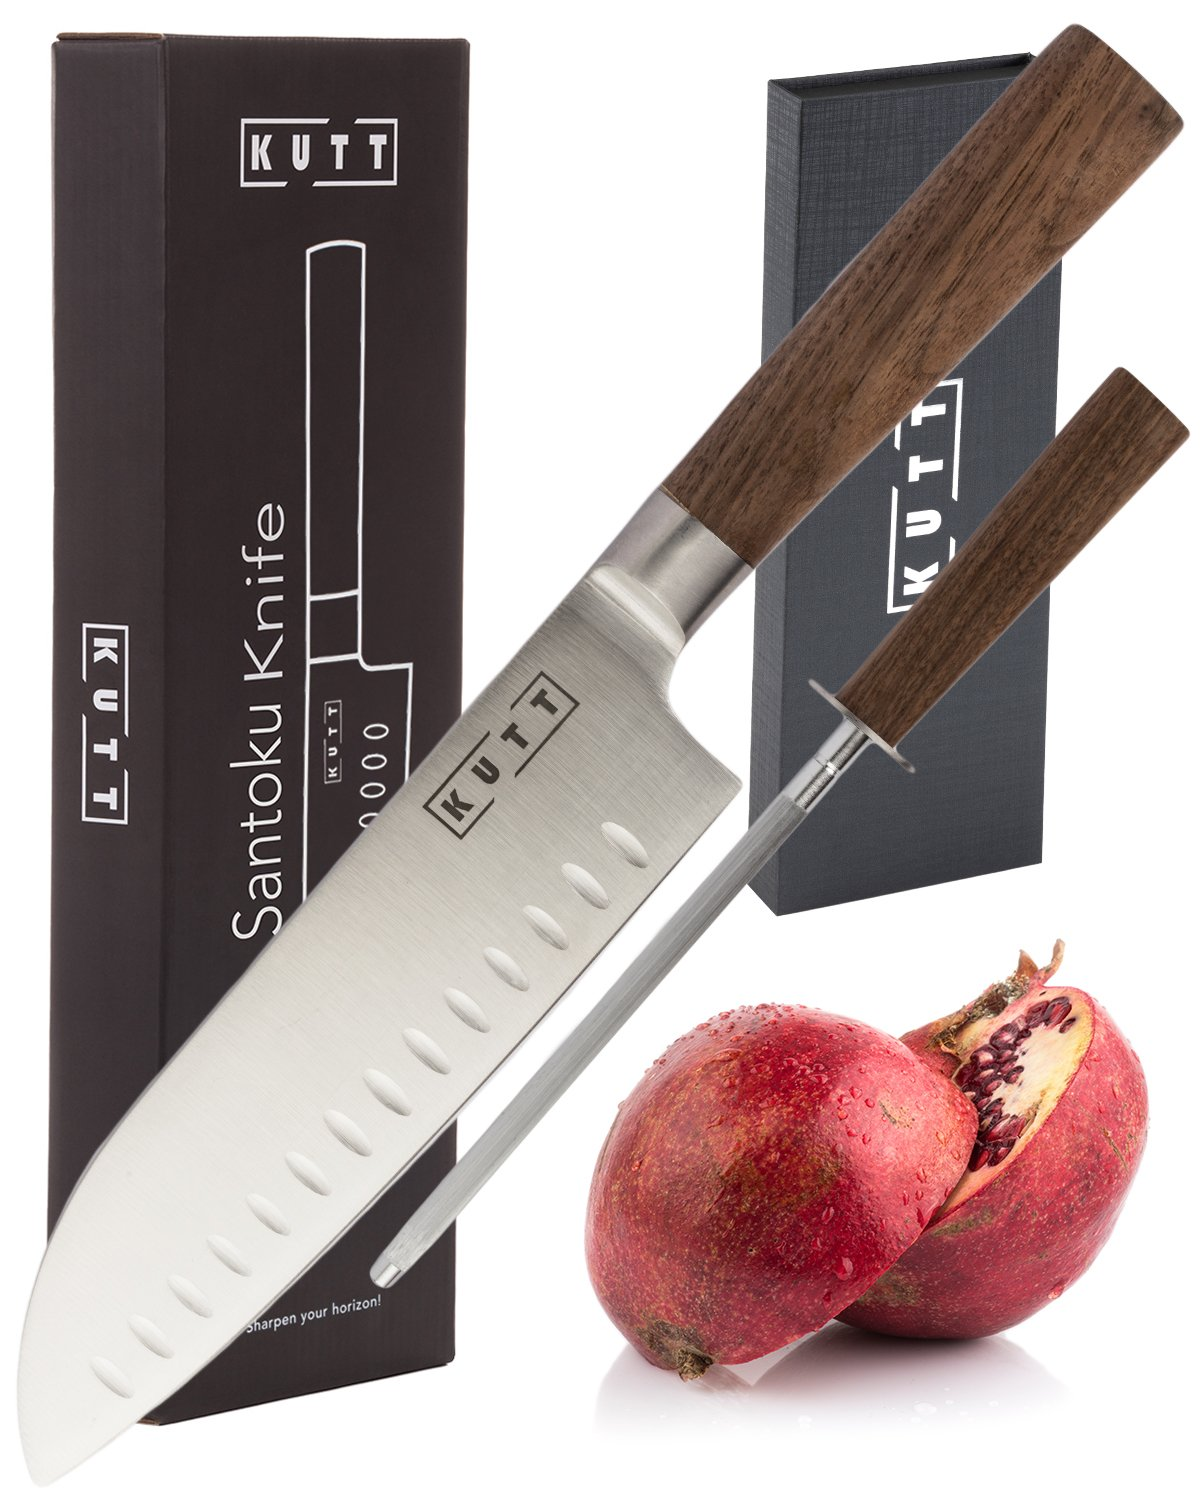 Kutt Santoku Knife | 7 inch Professional Chef Knife | High Carbon Stainless Steel Kitchen Knife | Knife Sharpener included